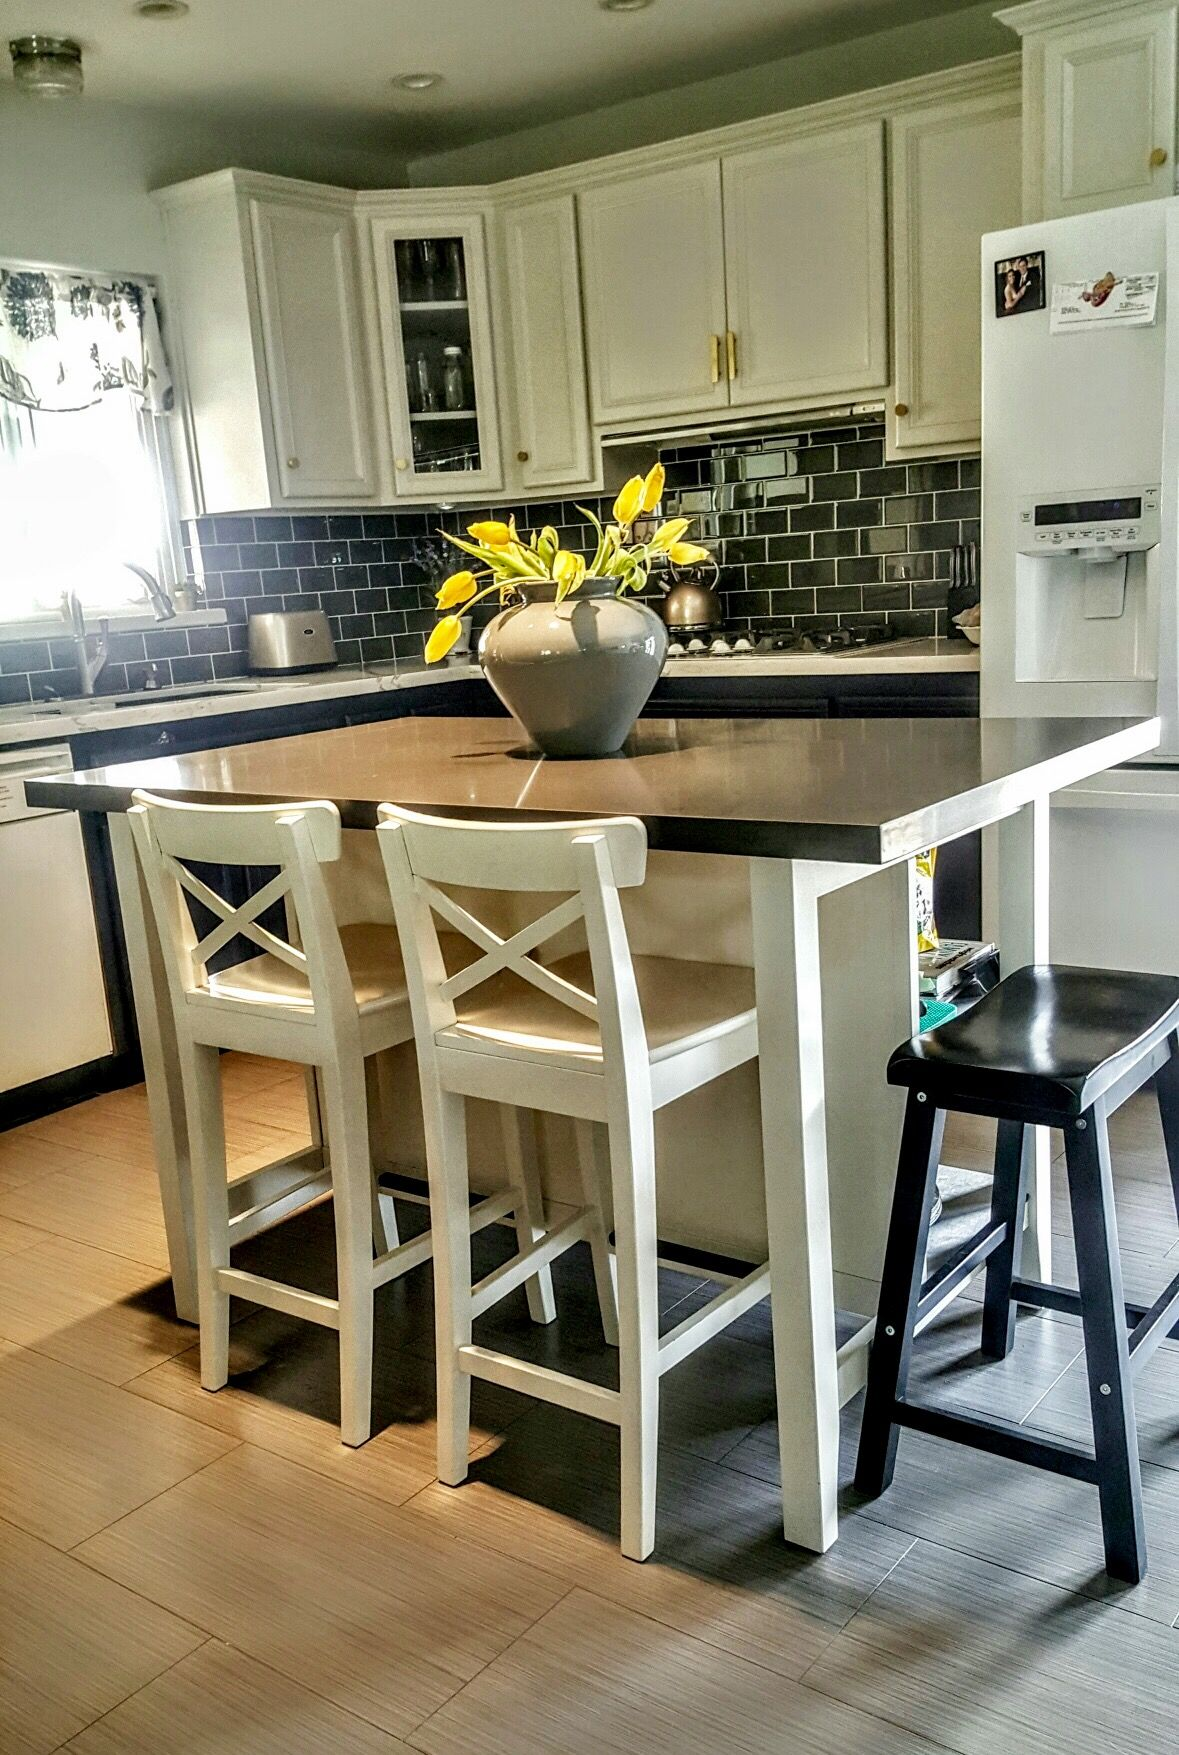 Ikea Stenstorp Kitchen Island Hack We Added Grey Quartz